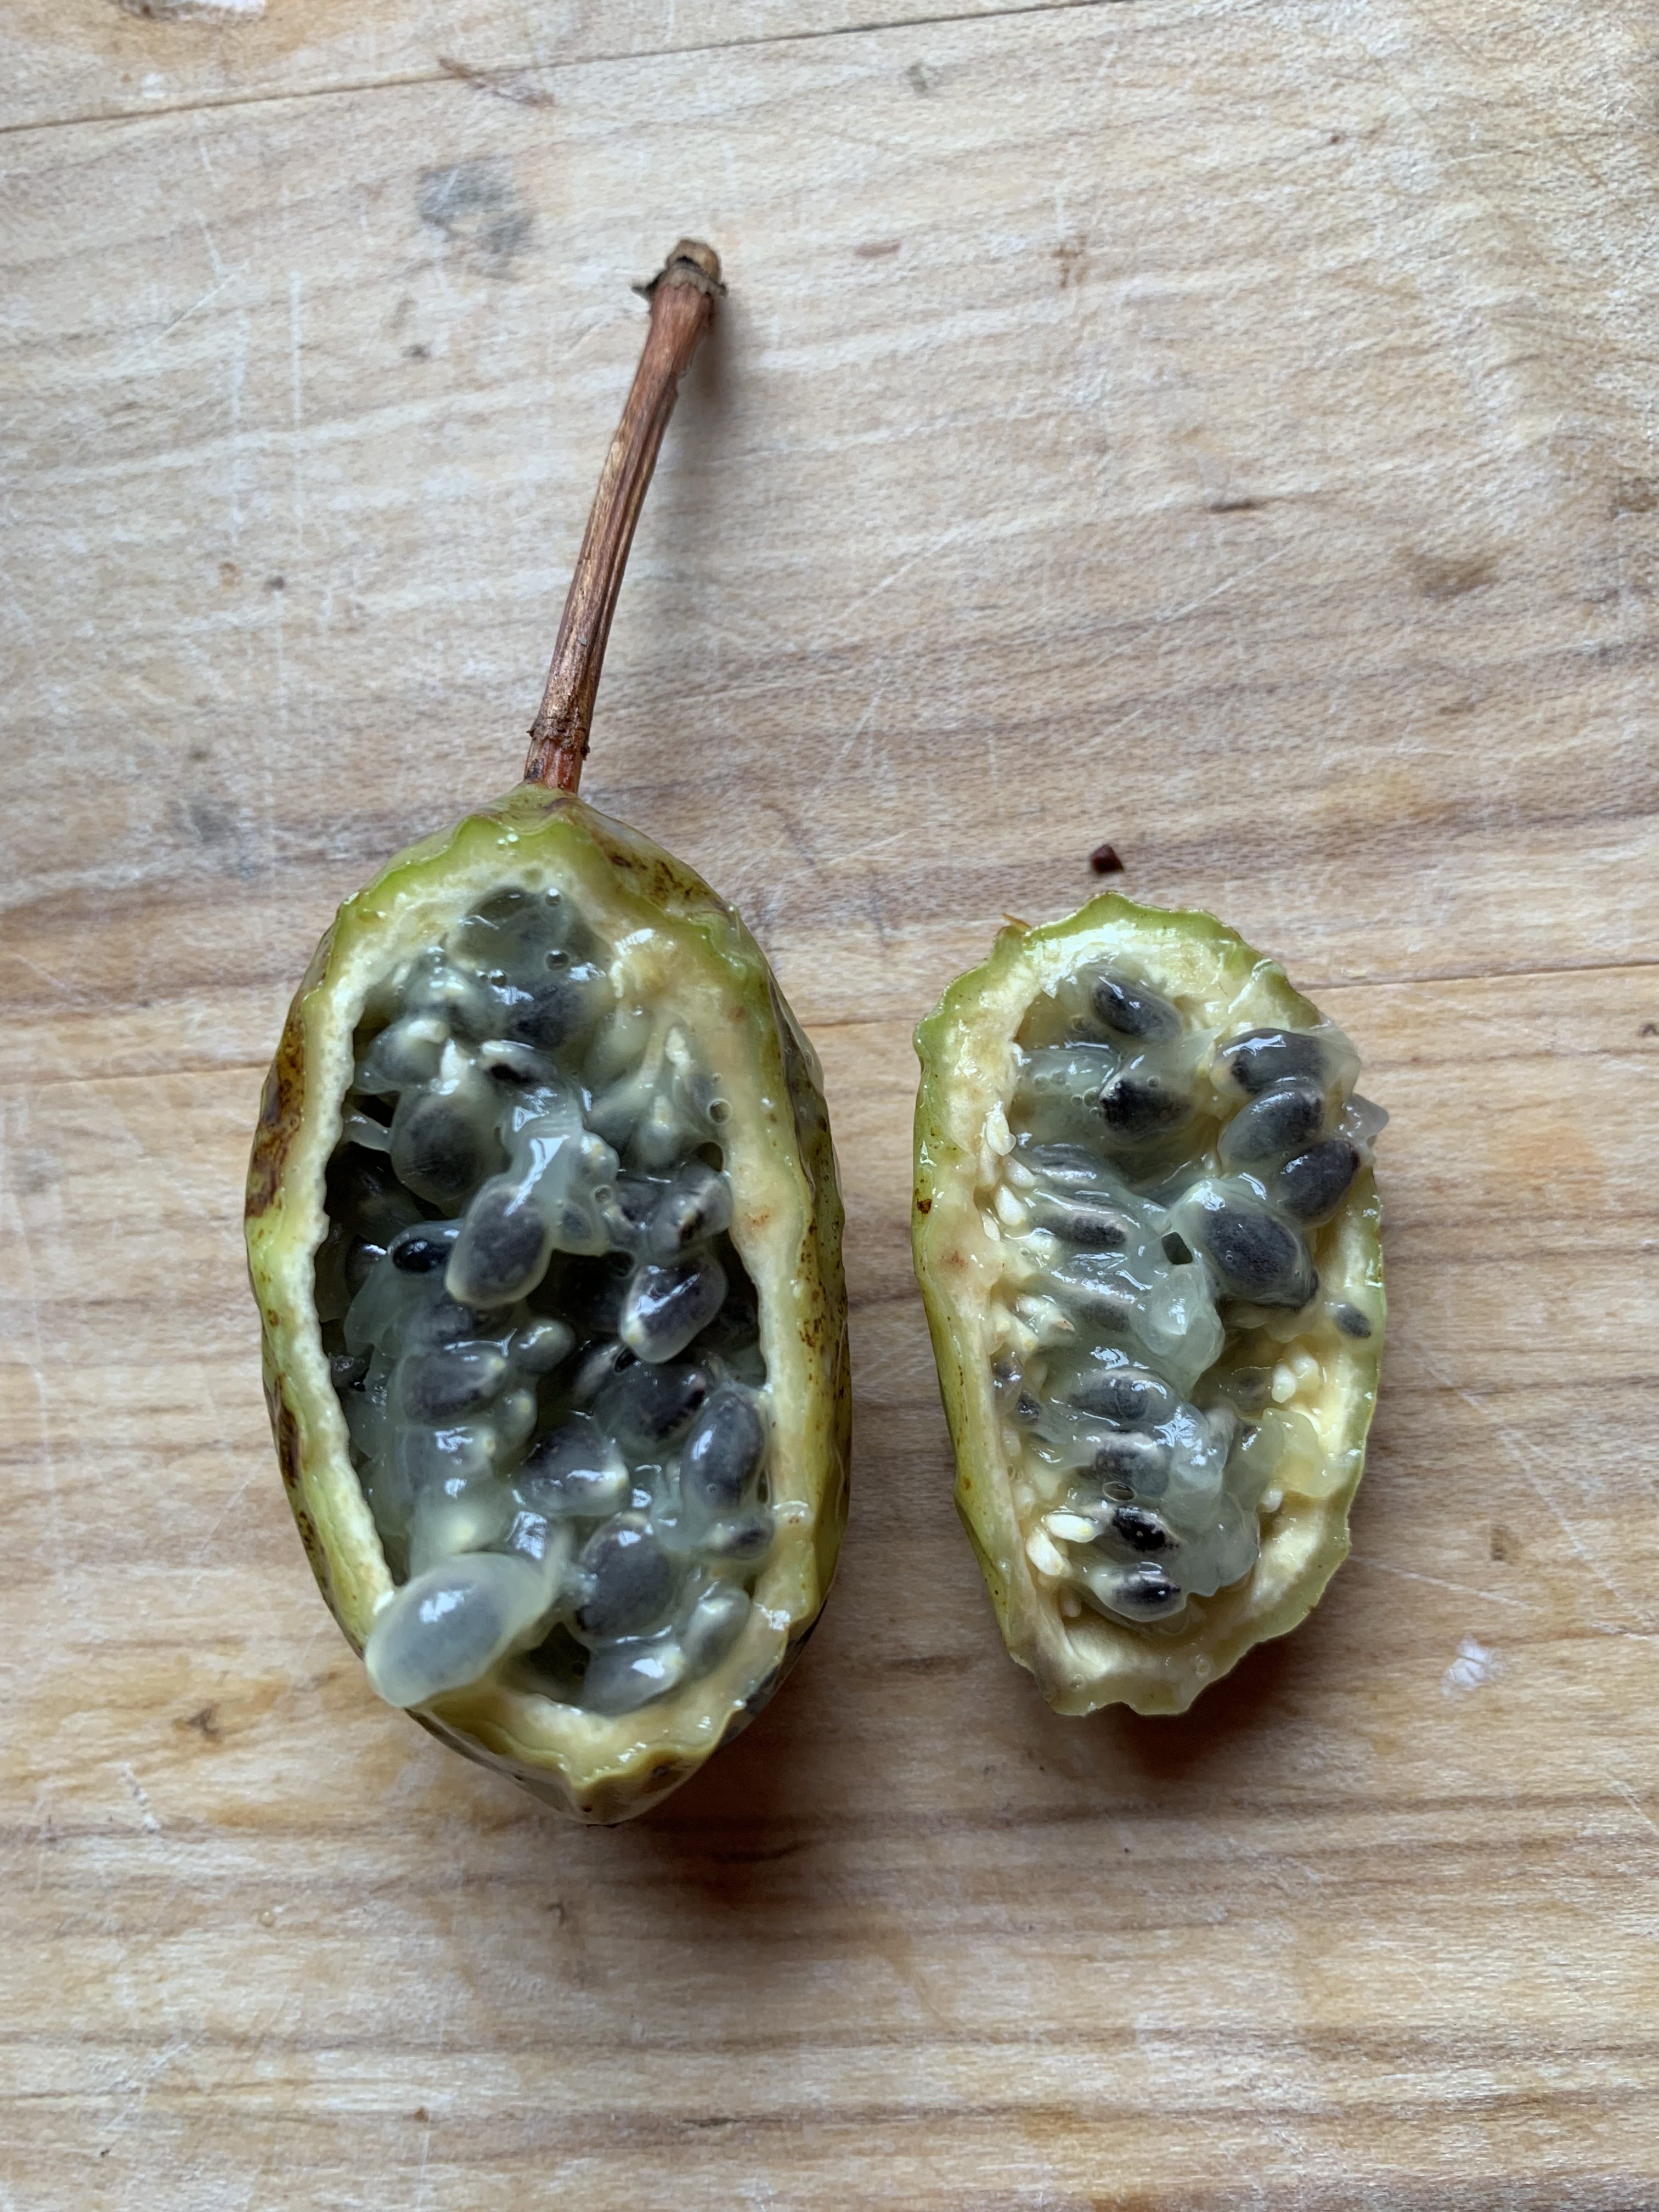 Passiflora manicata fruit and seed